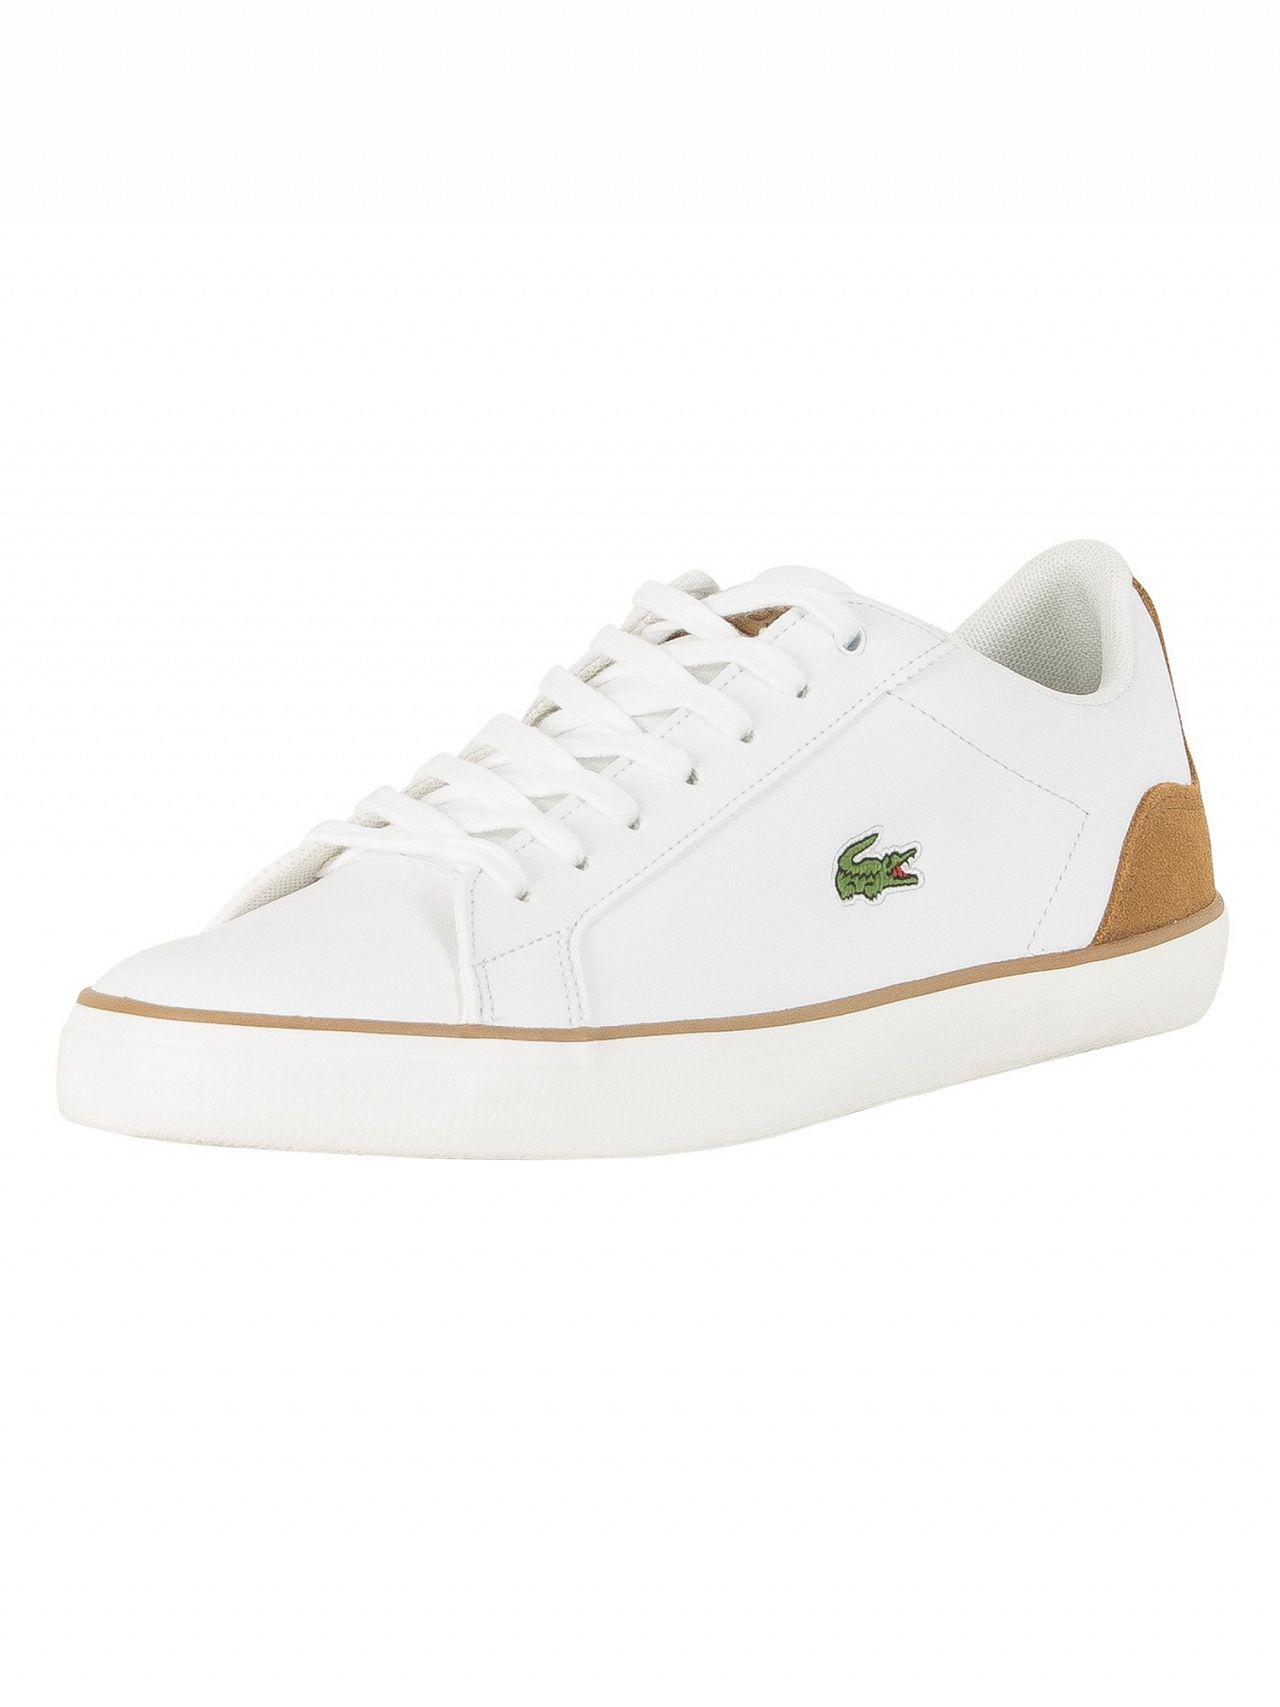 67b9cecb2 Lacoste White Light Brown Lerond 118 1 CAM Leather Trainers